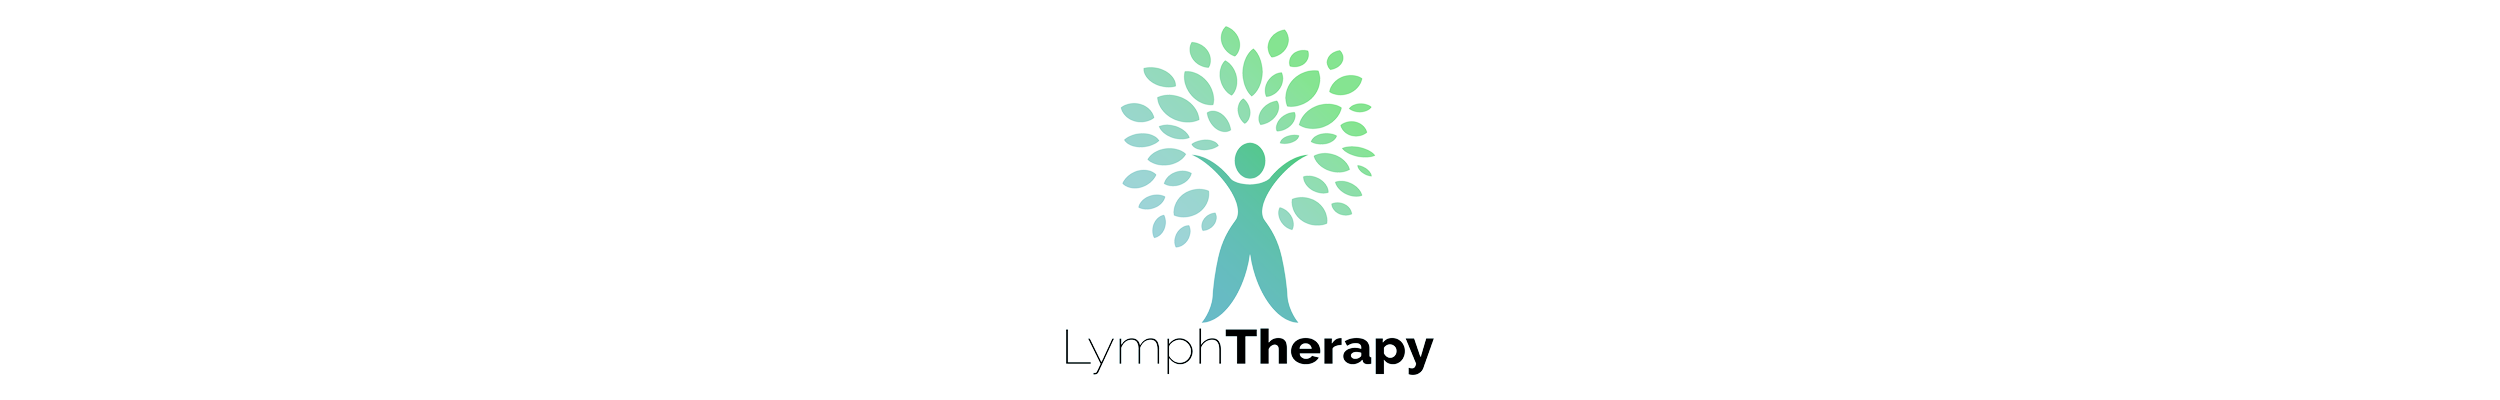 LymphTherapy